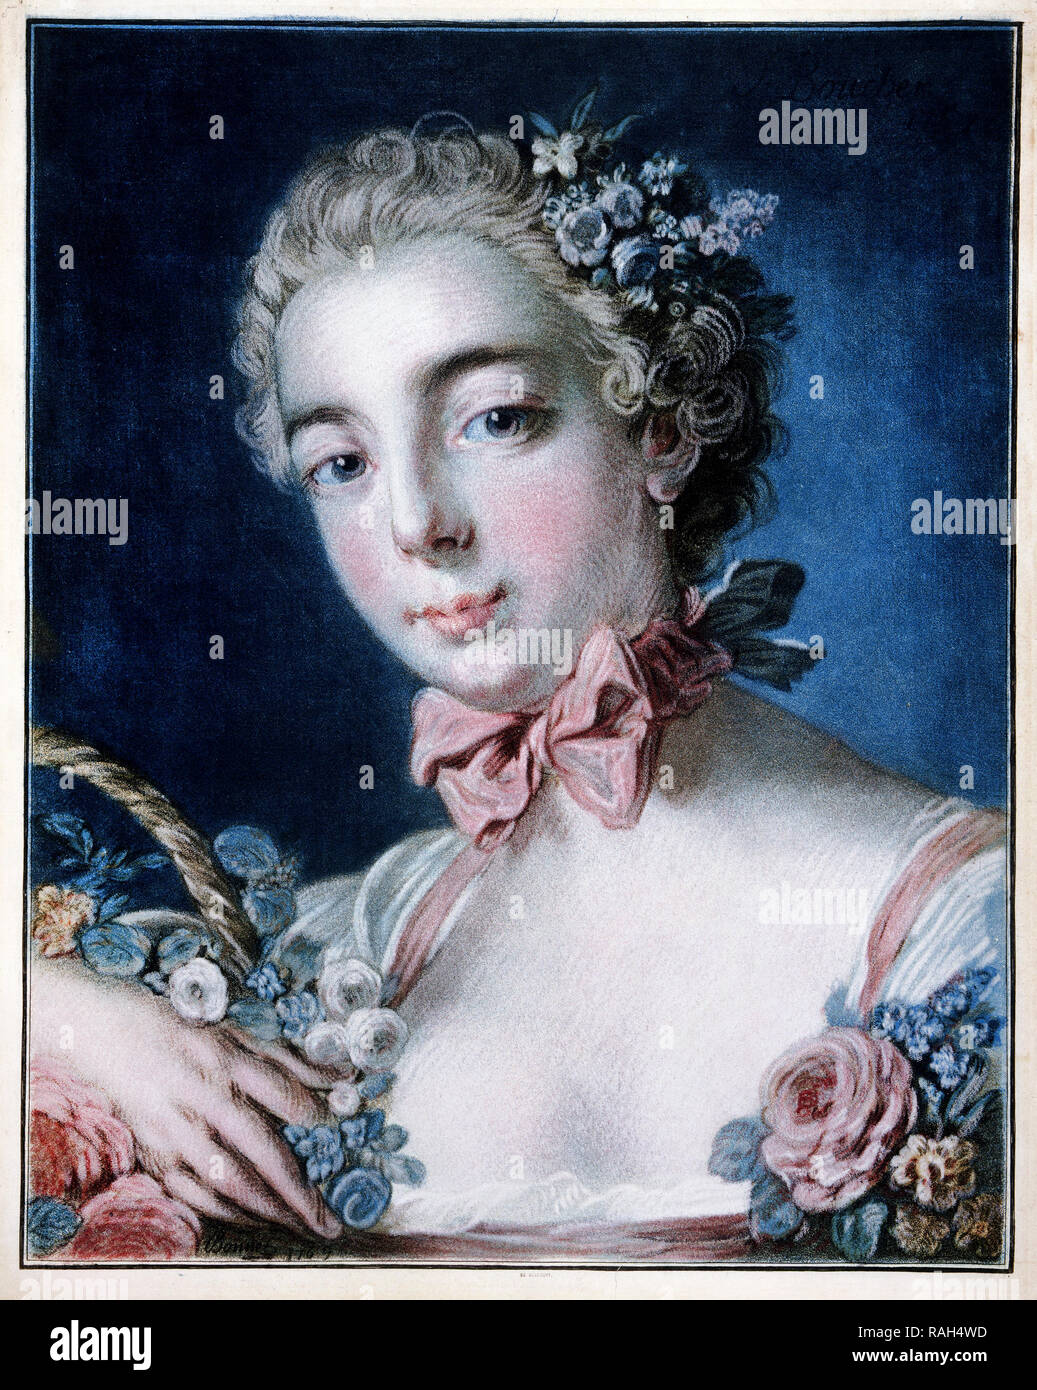 Louis-Marin Bonnet, Head of Flora 1769 Pastel-manner engraving printed in color from eight plates, Philadelphia Museum of Art, USA. - Stock Image